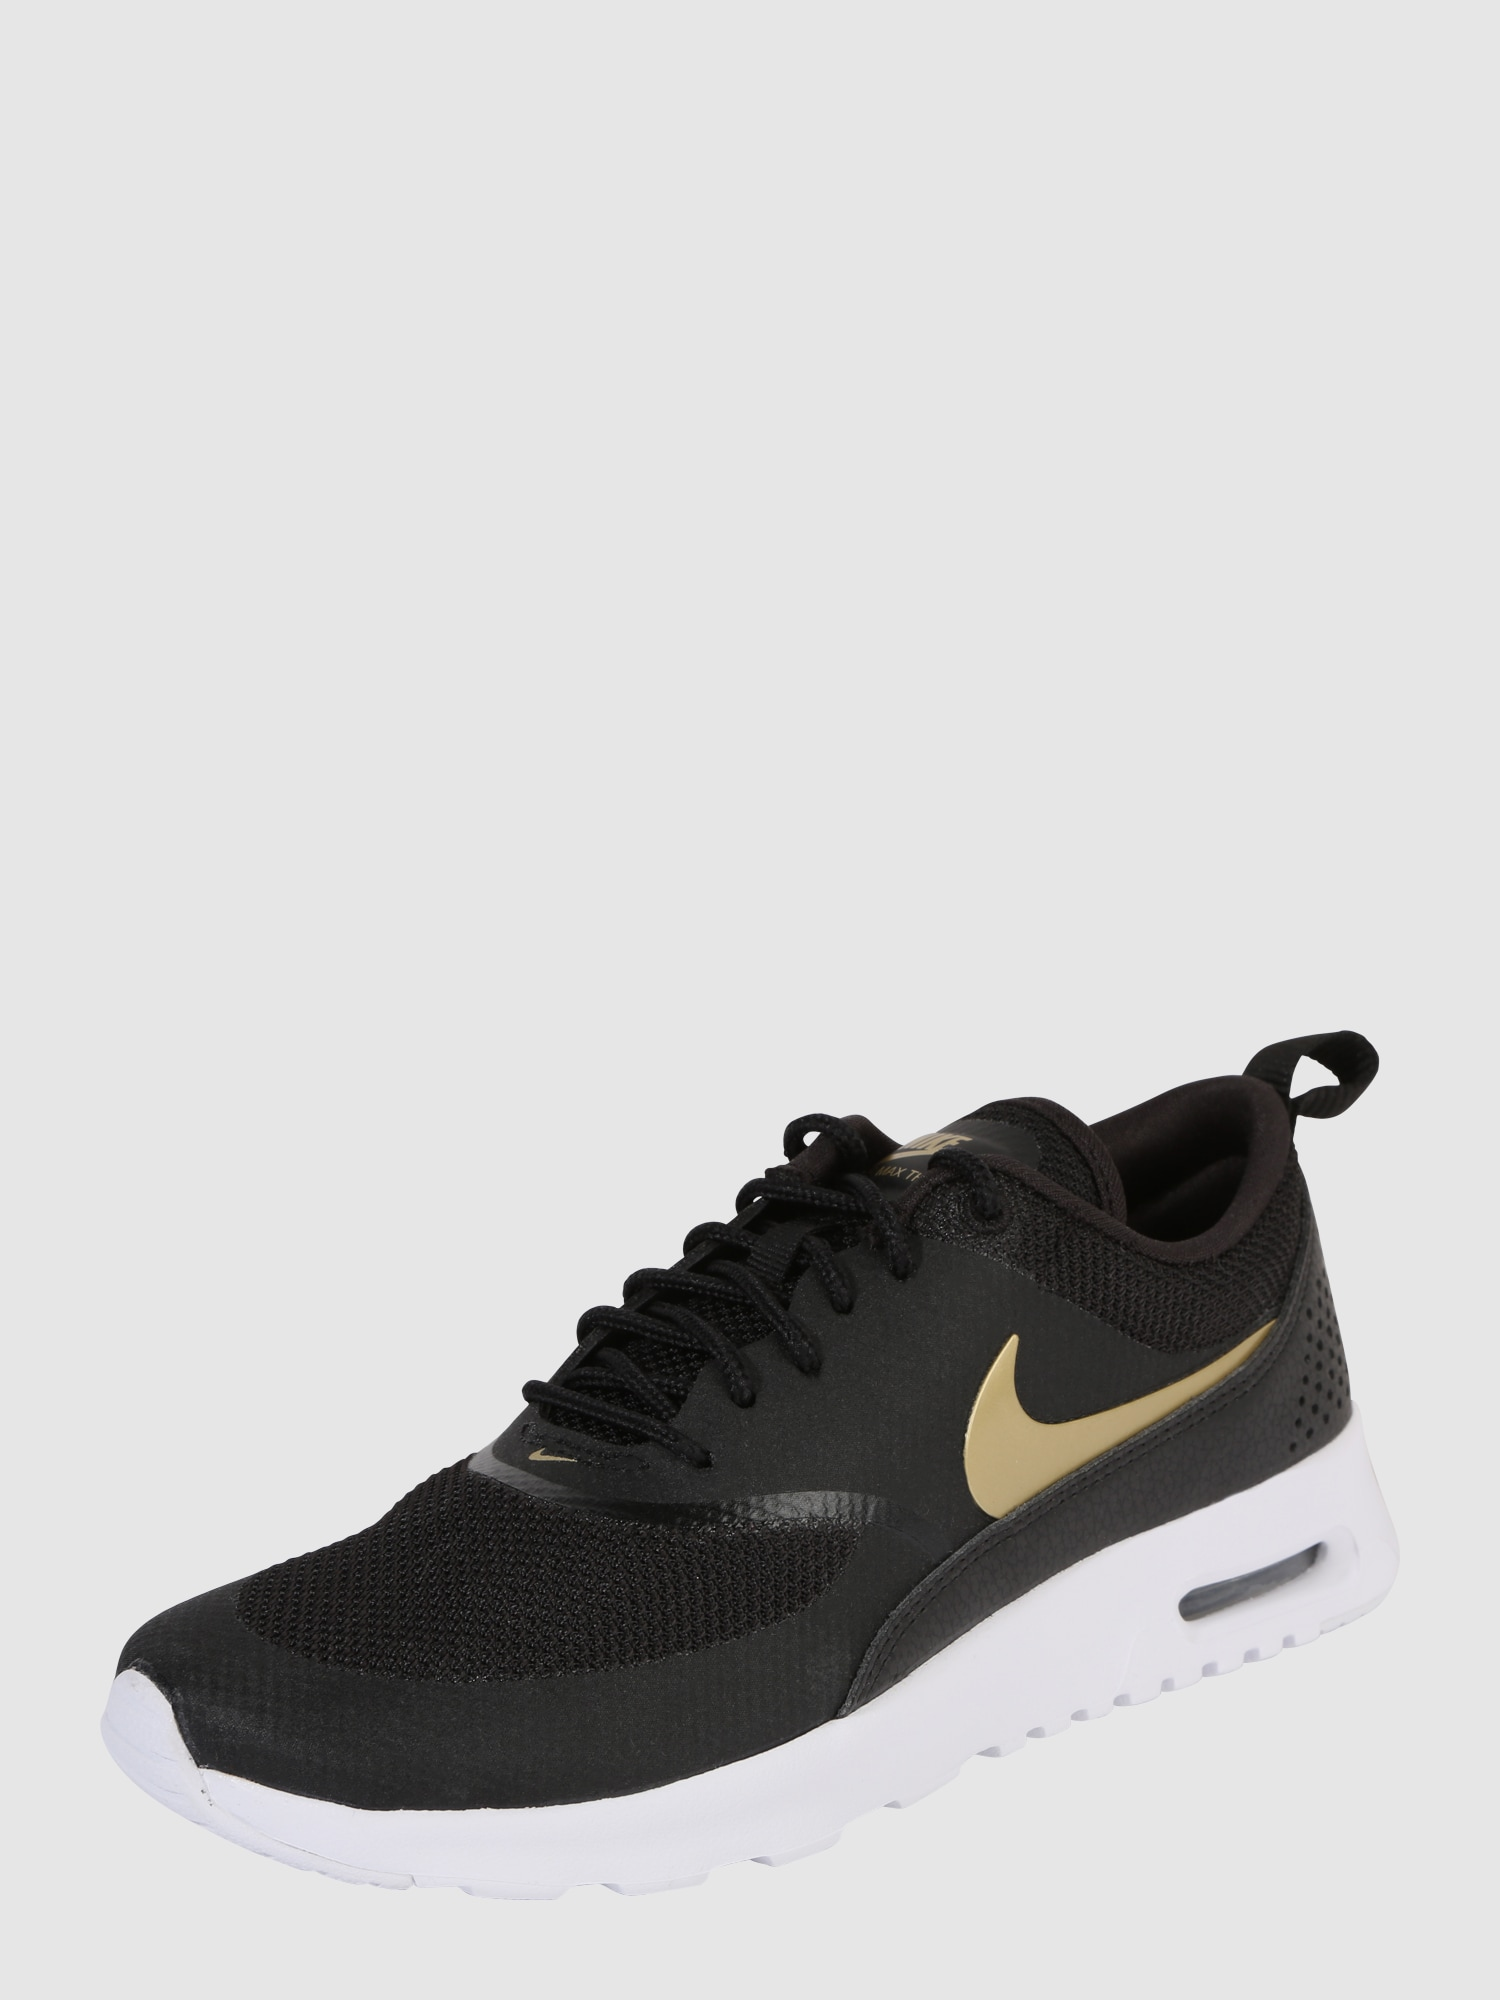 nike sportswear sneaker 39 air max thea j 39 in schwarz. Black Bedroom Furniture Sets. Home Design Ideas